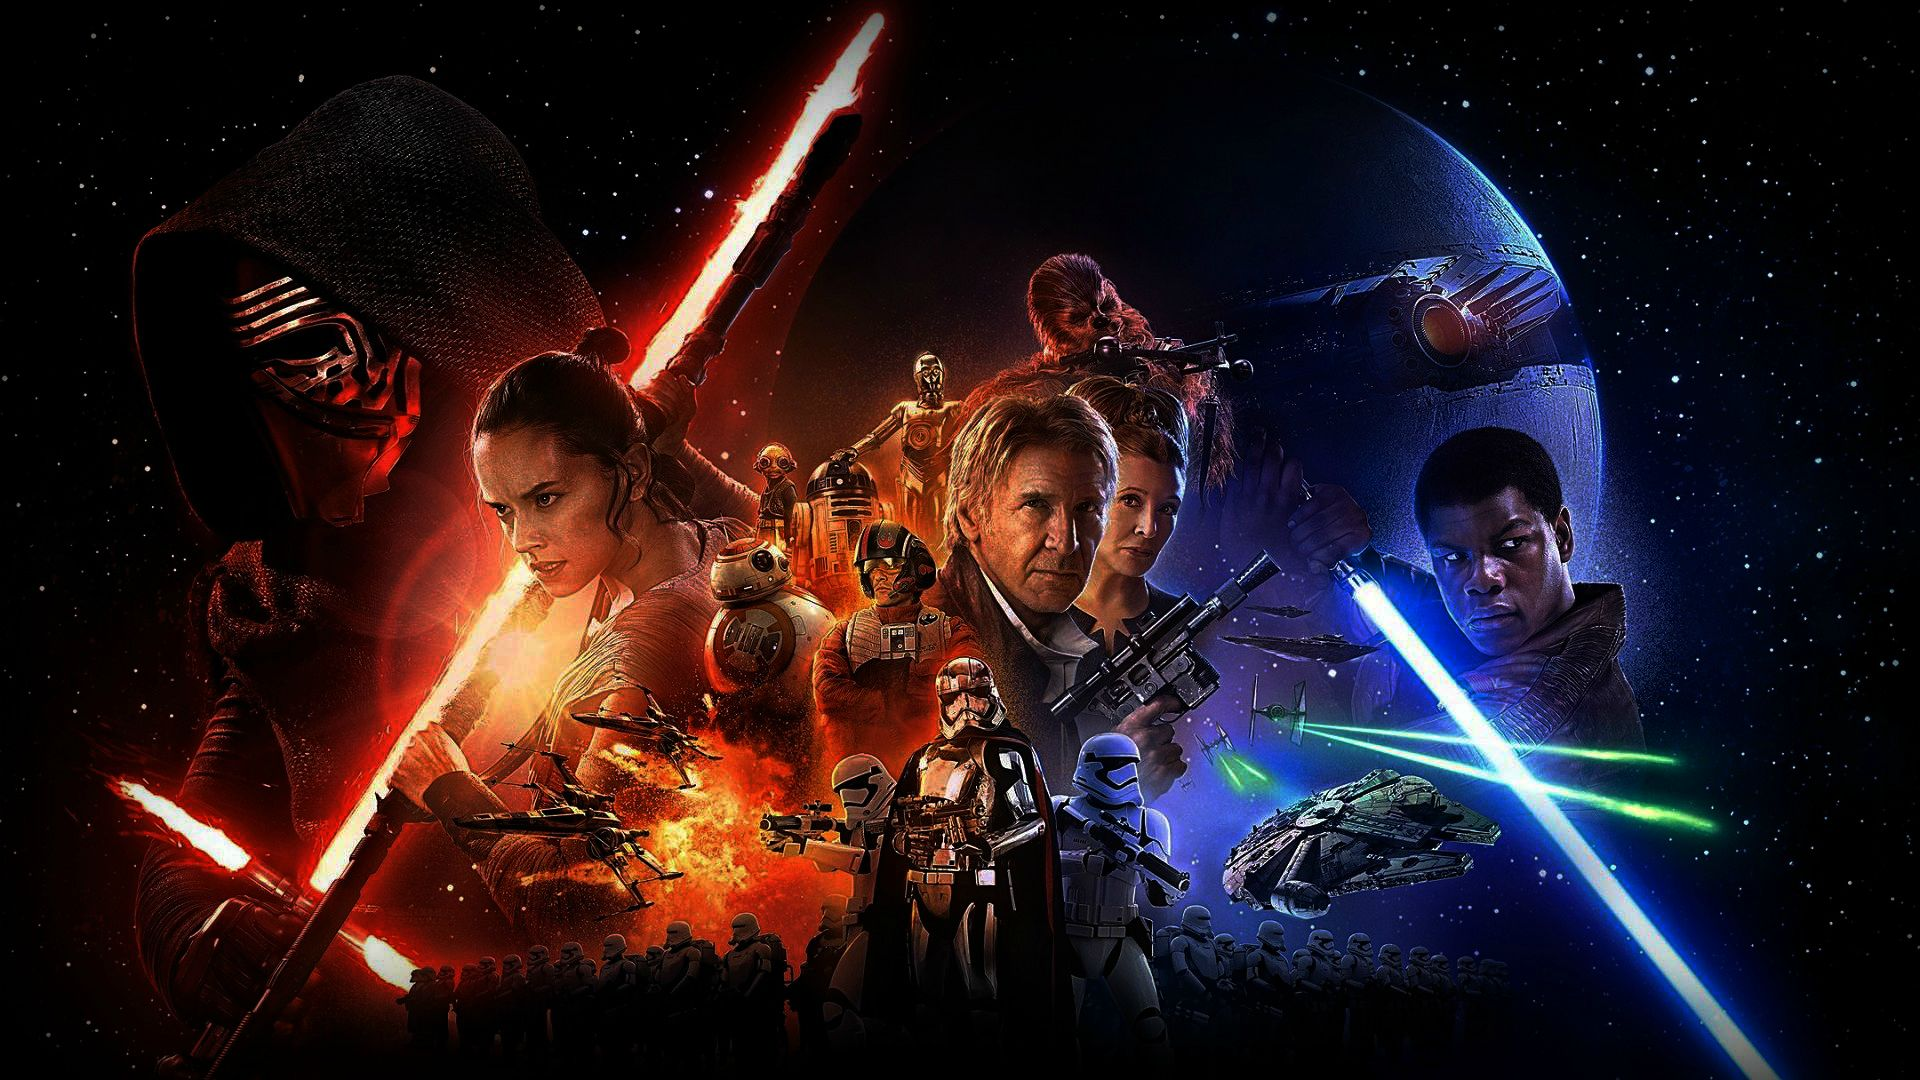 Ring Composition Episode VIII Star-wars-force-awakens